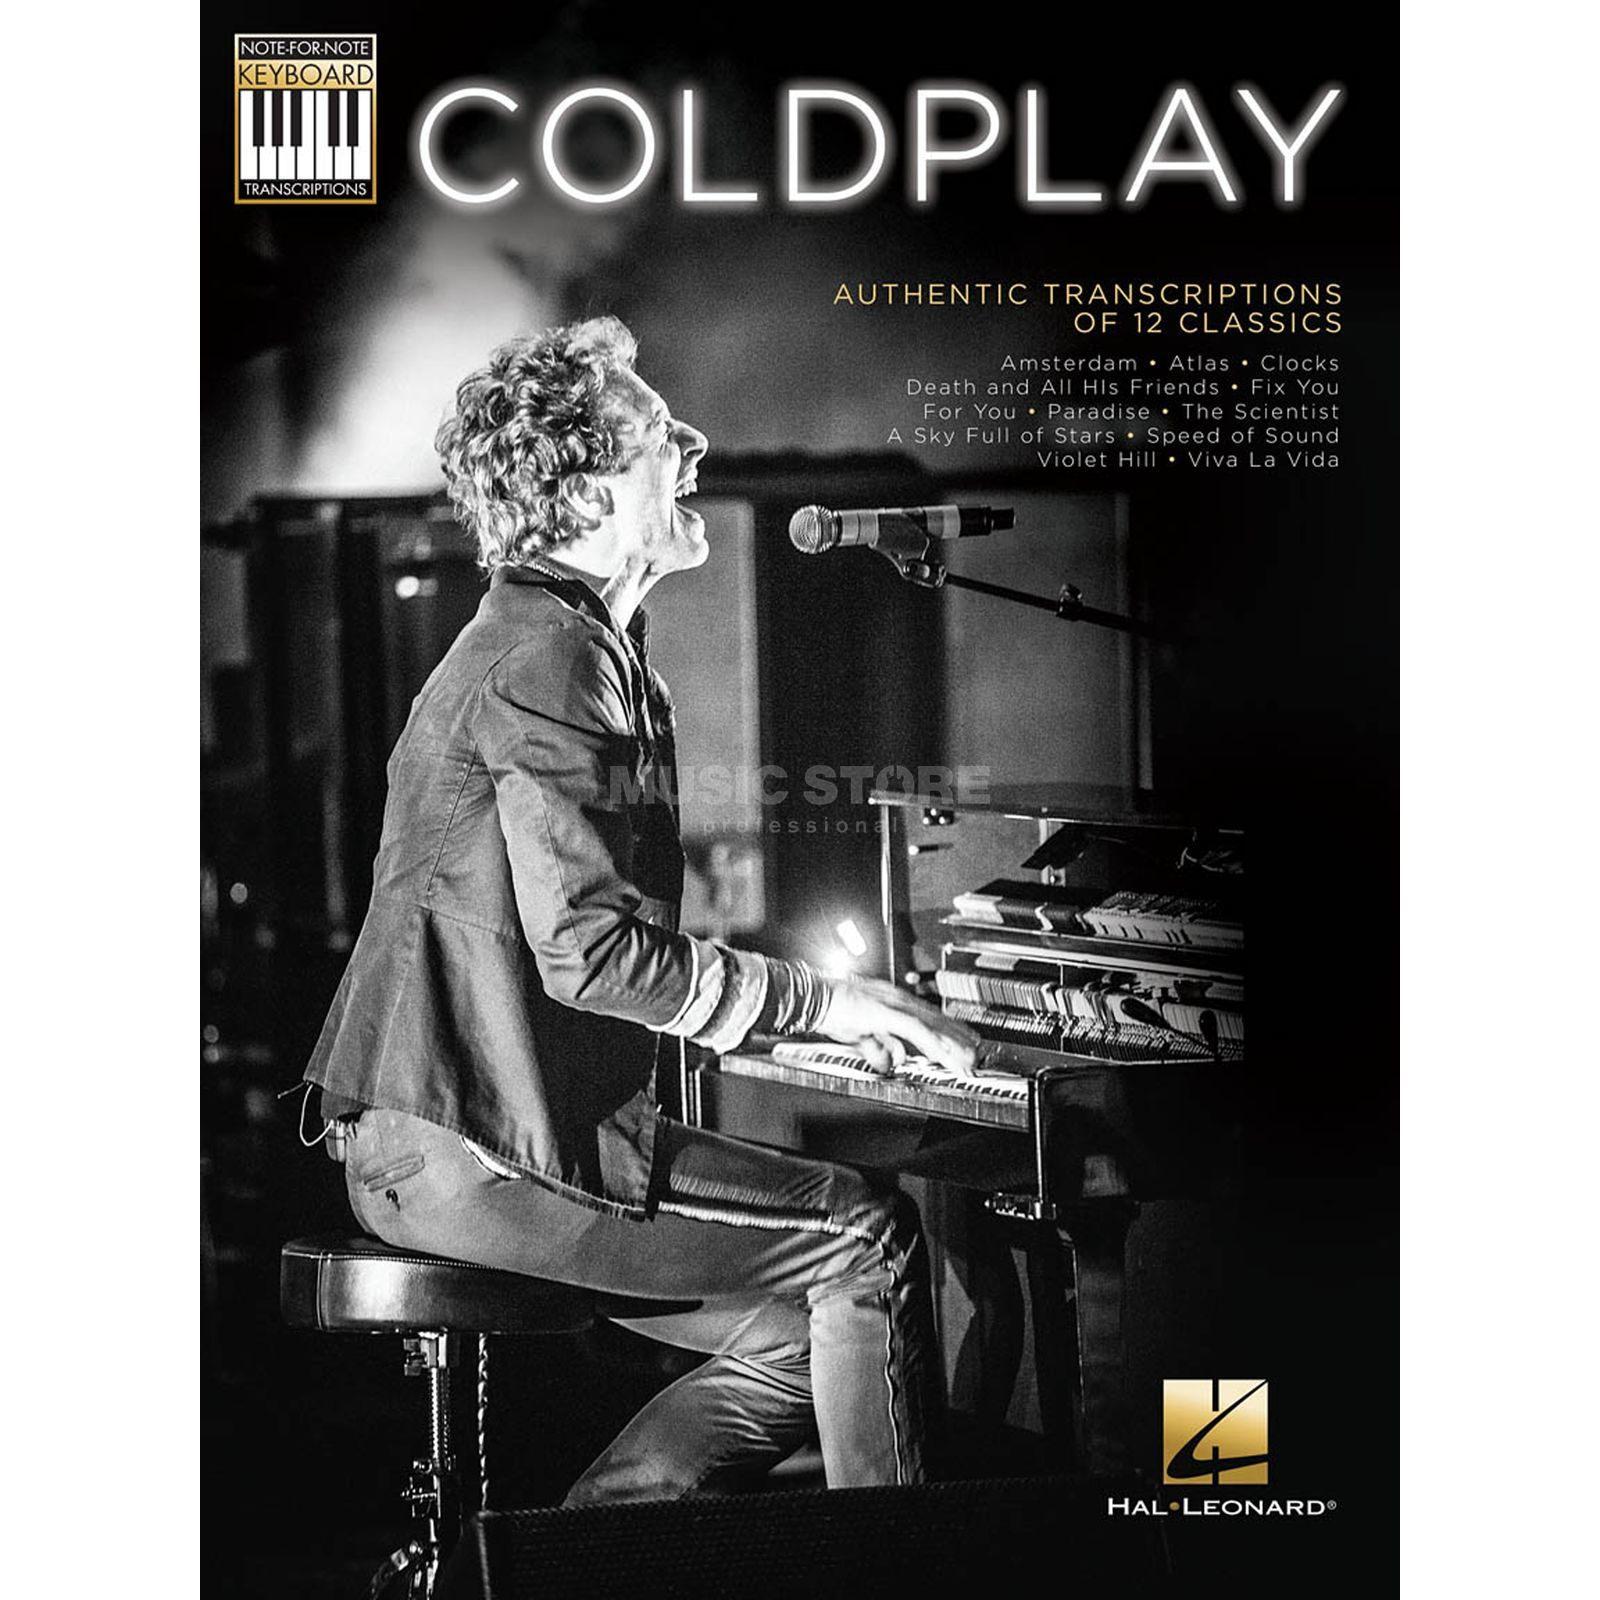 Hal Leonard Coldplay: Authentic Transcriptions Of 12 Classics Produktbild